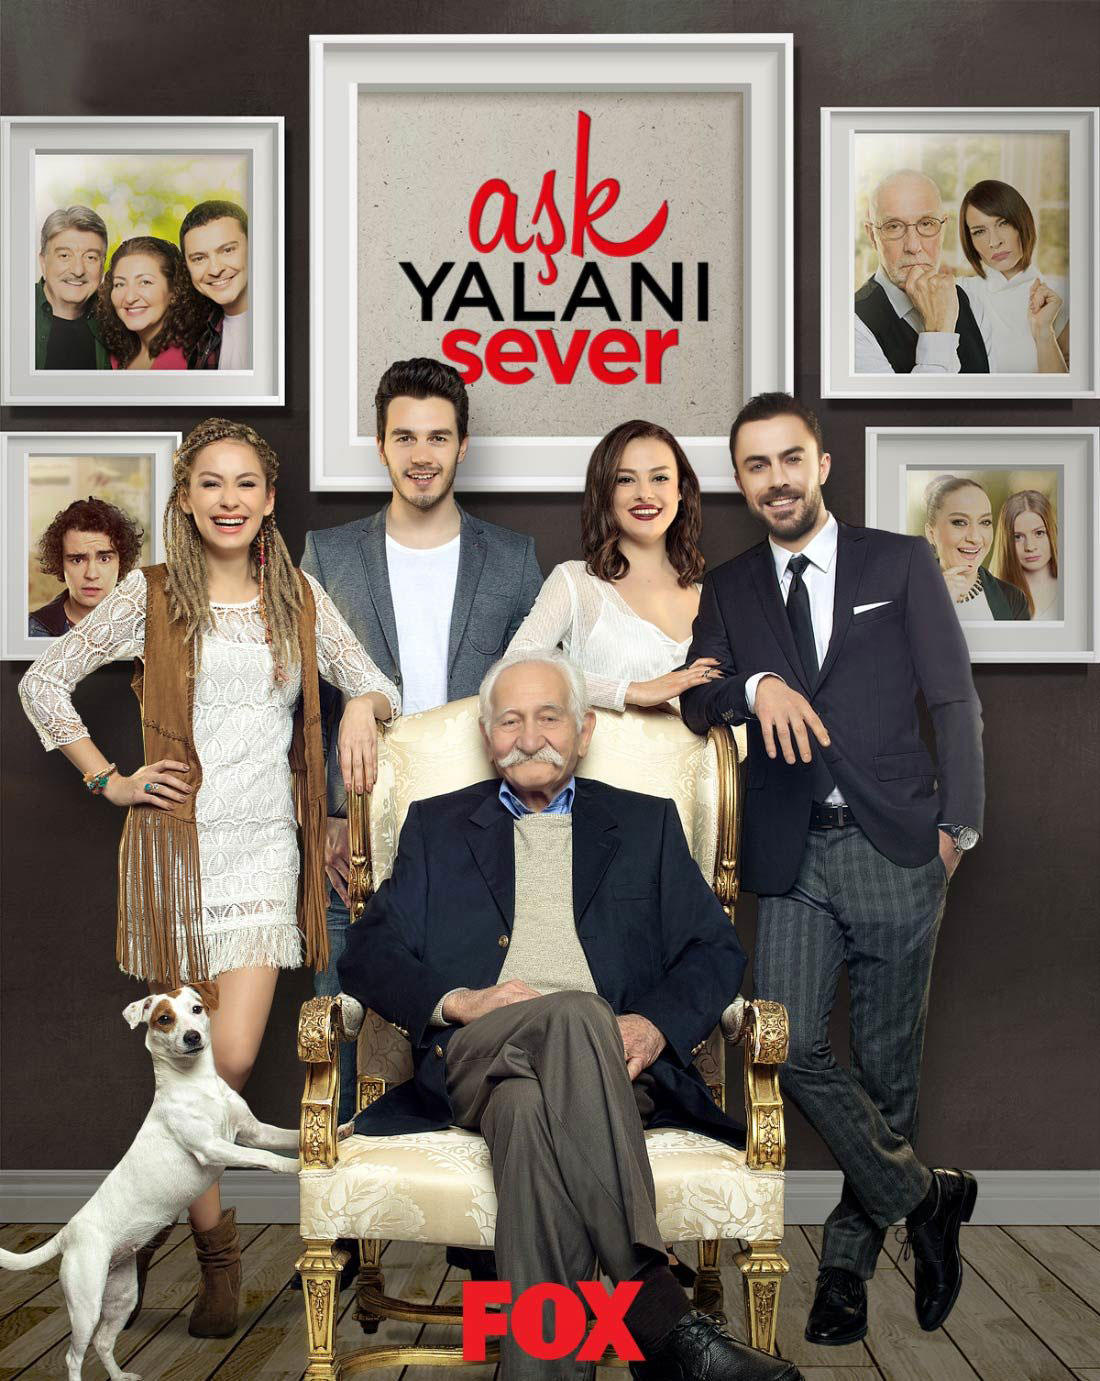 ask-yalani-sever-01